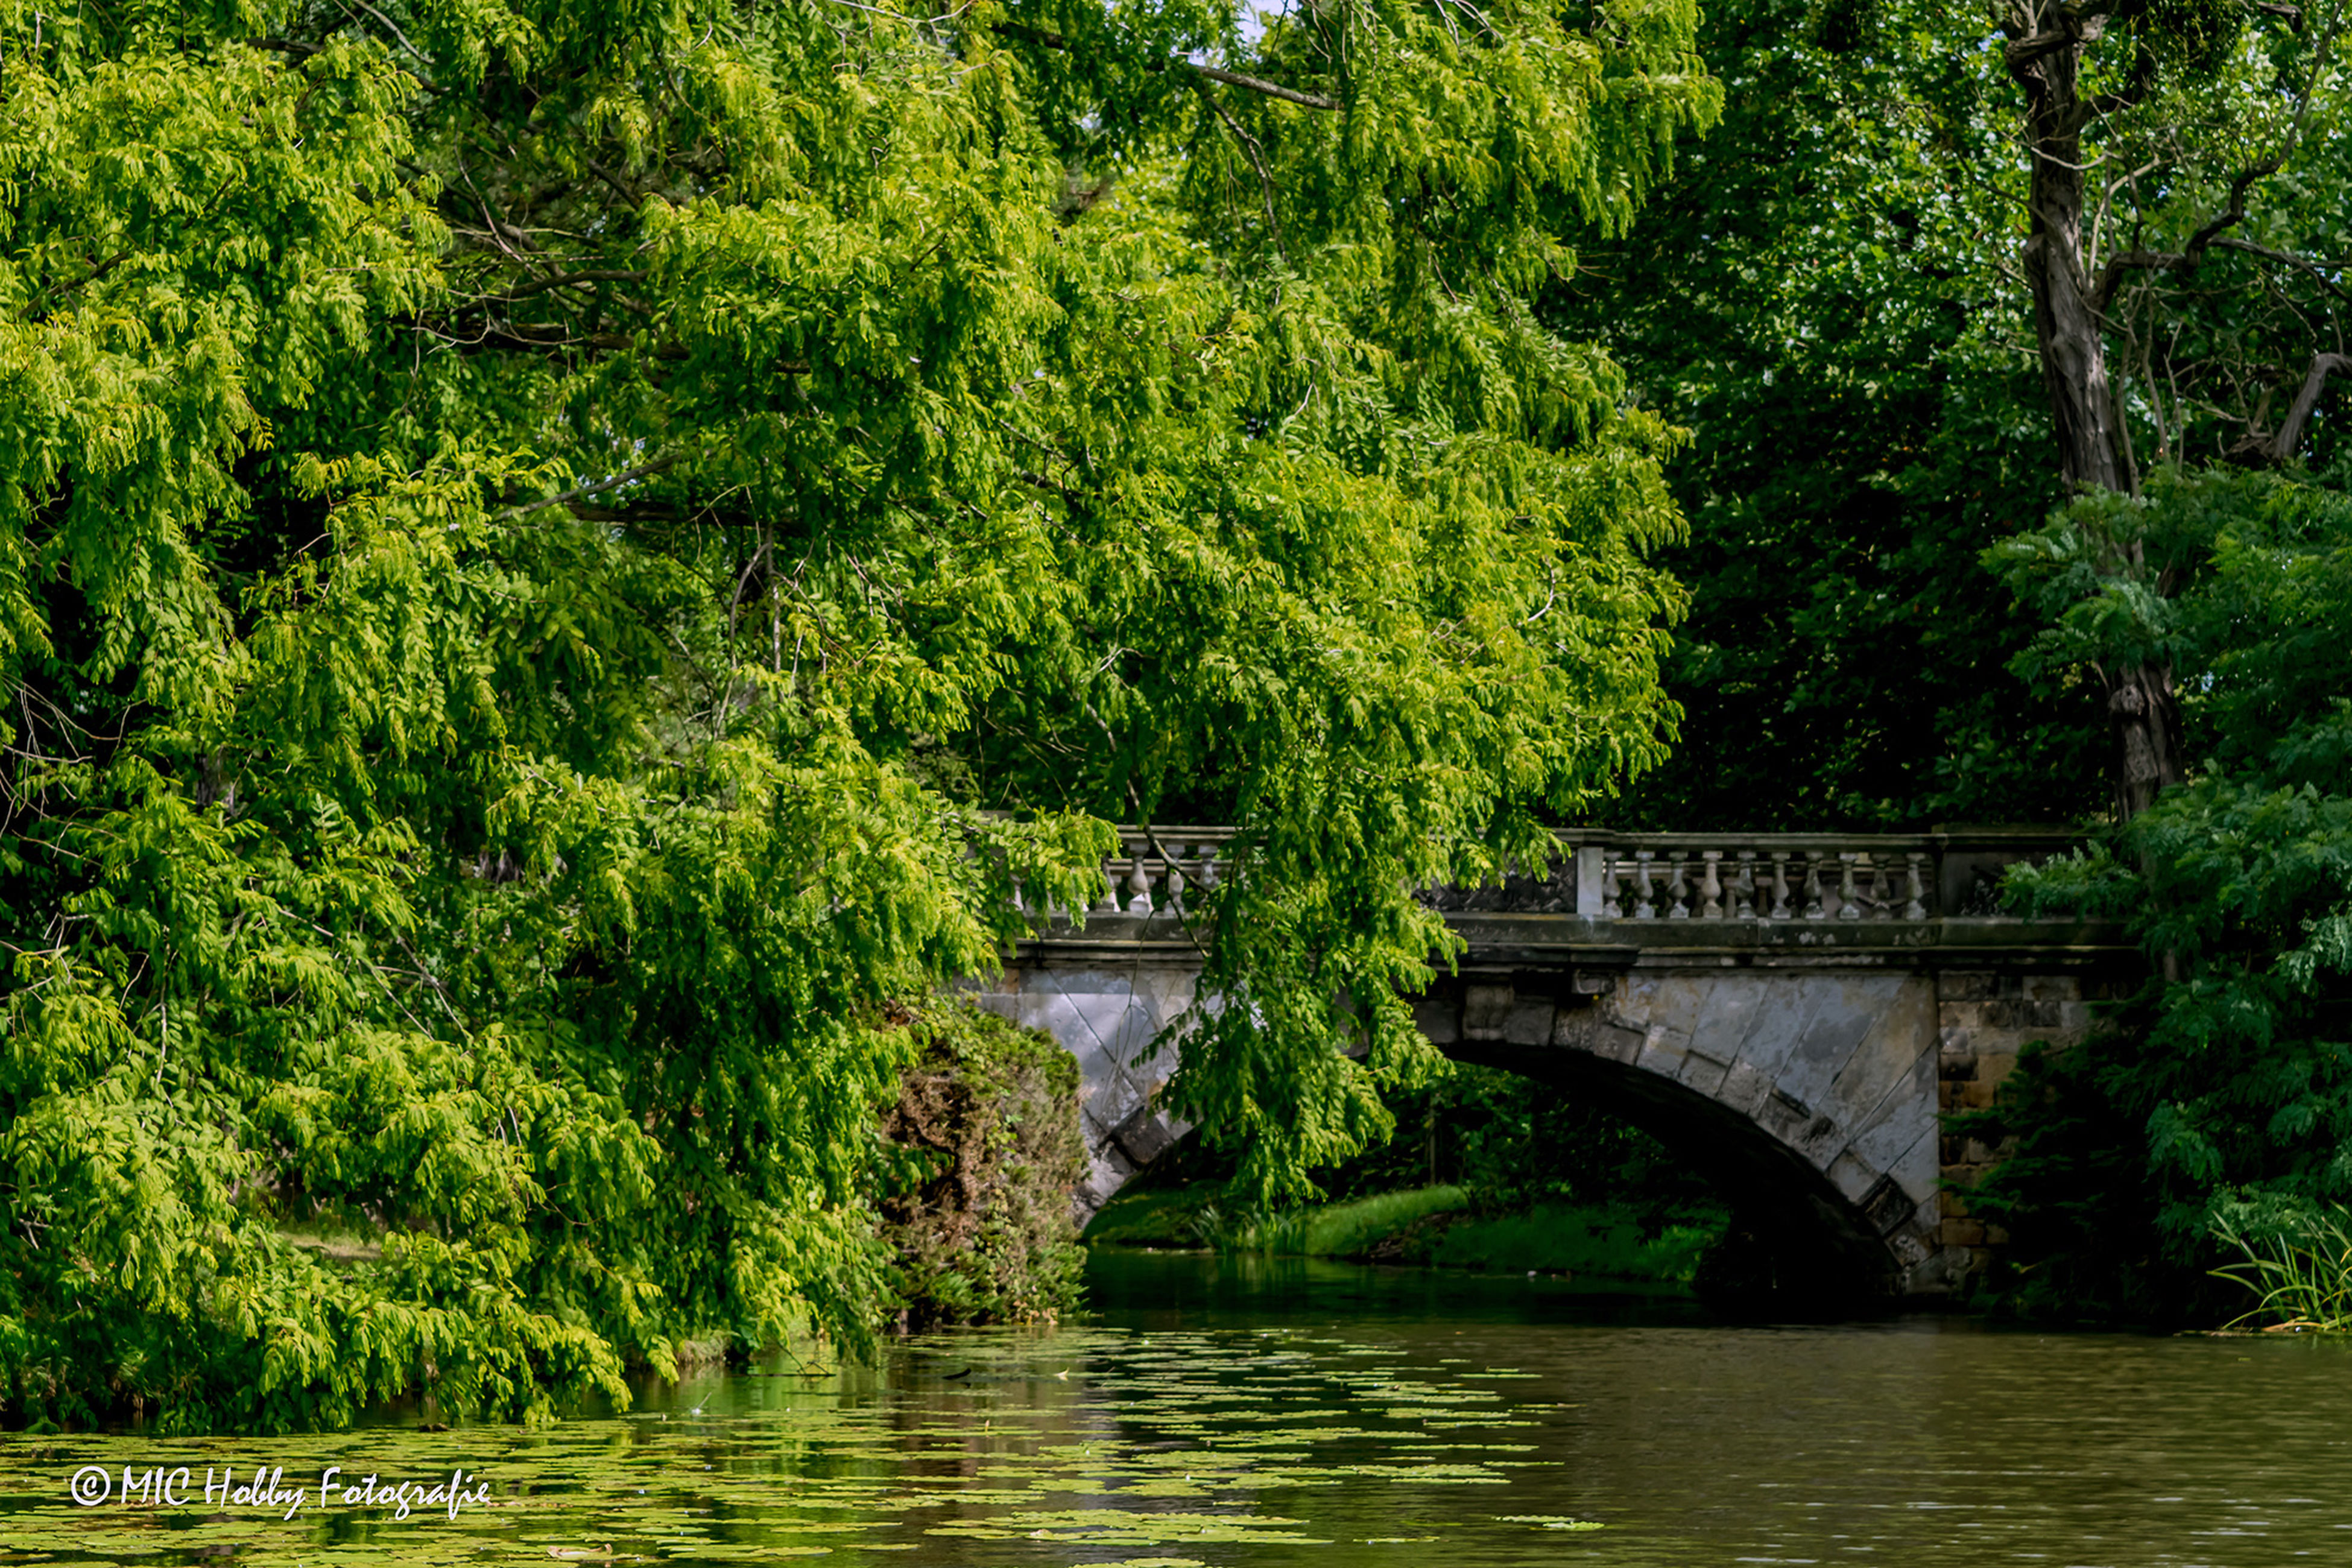 water, tree, bridge - man made structure, connection, tranquil scene, green color, tranquility, scenics, growth, river, park, bridge, garden, beauty in nature, nature, lake, waterfront, park - man made space, lush foliage, footbridge, idyllic, branch, plant, day, non-urban scene, stream, calm, greenery, outdoors, arch, japanese garden, narrow, majestic, no people